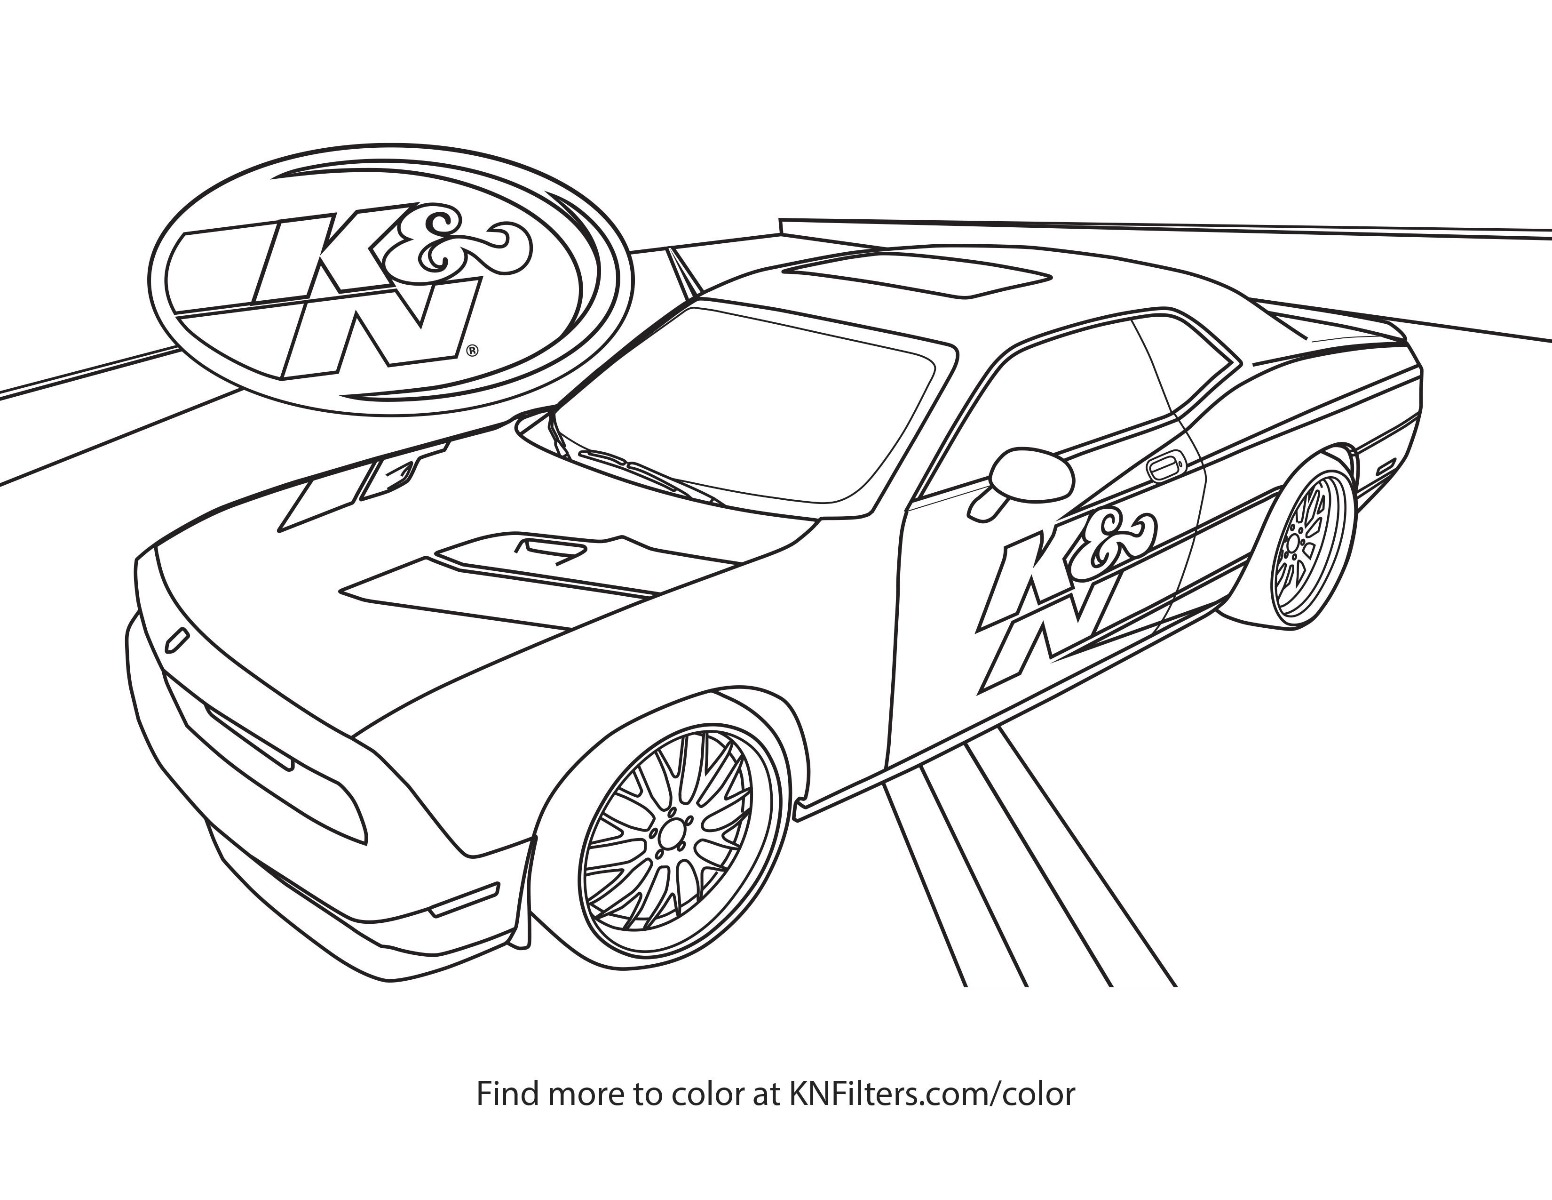 Ford Mustang Coloring Pages - Get Coloring Pages | 1200x1552